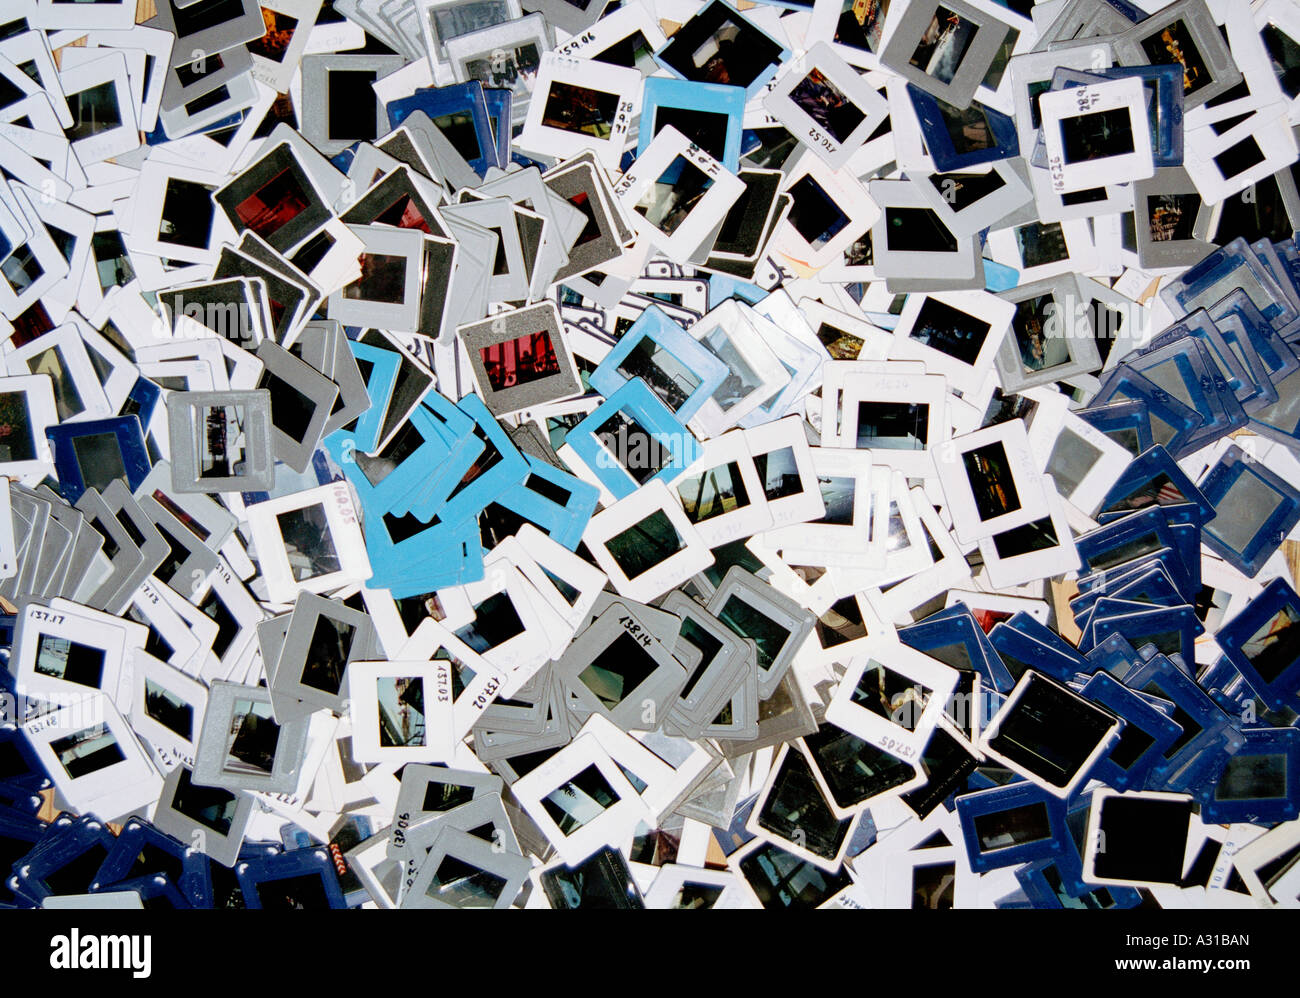 Heap of photographic slides - Stock Image